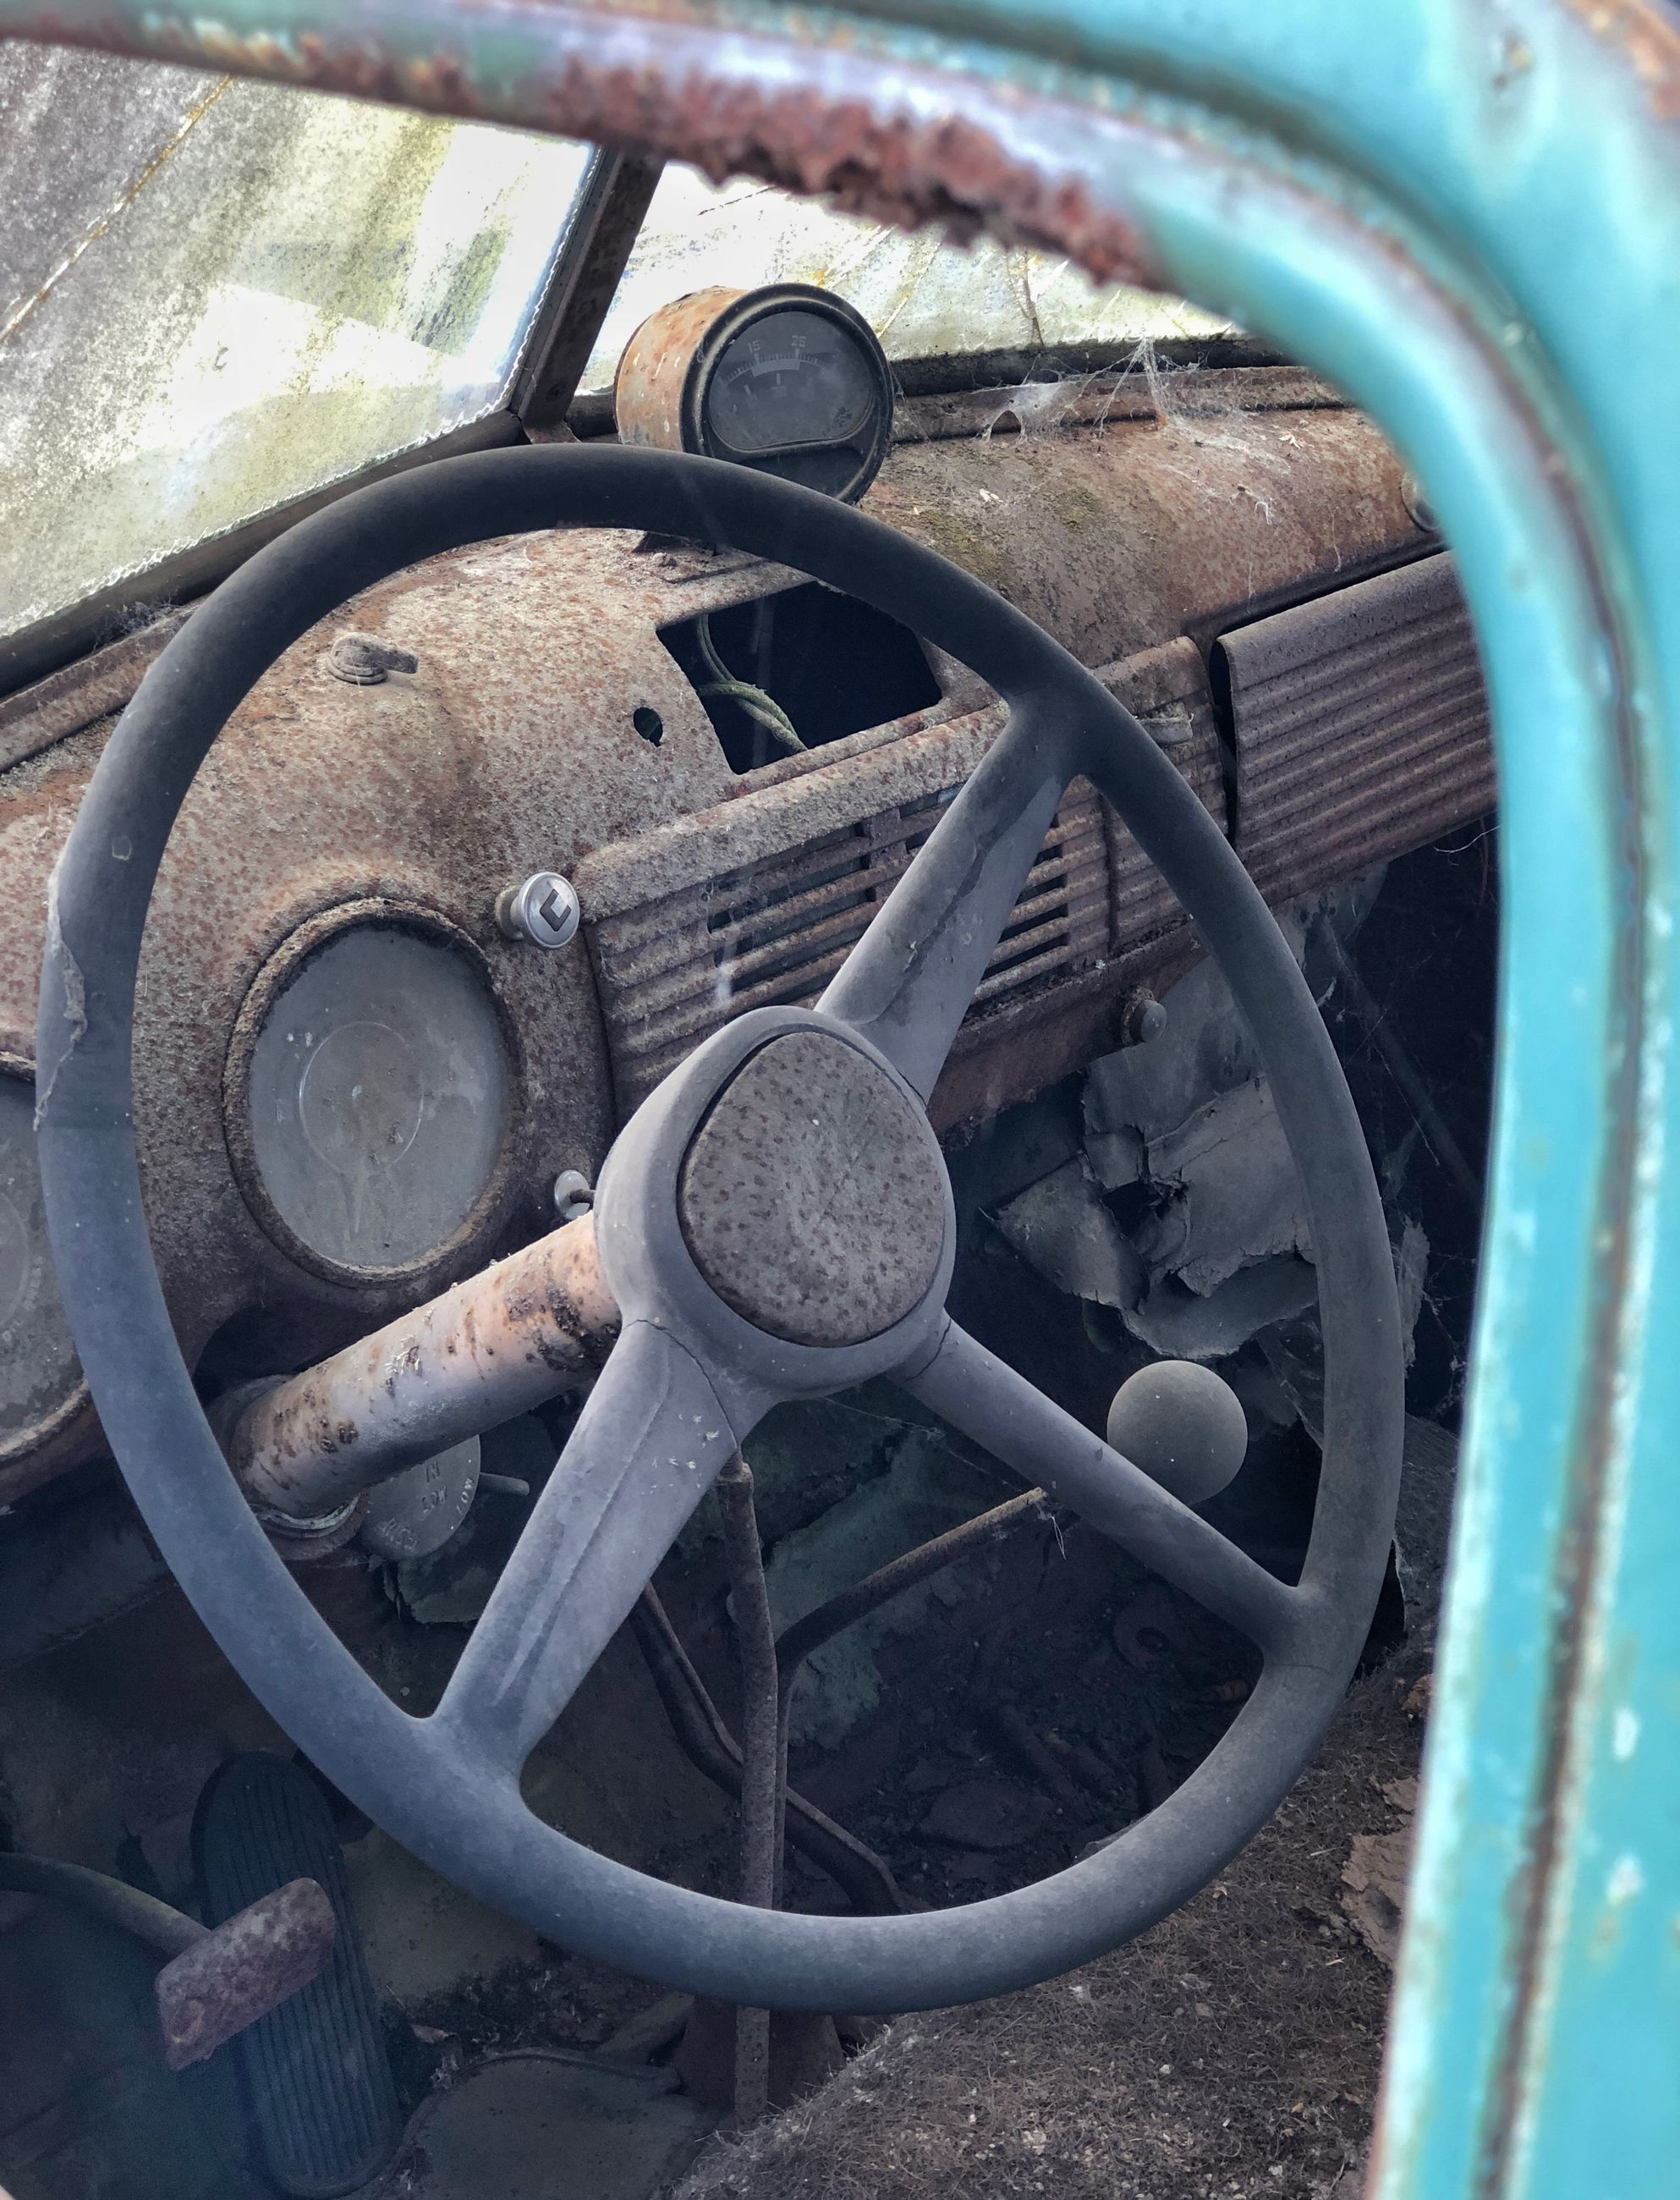 metal, no people, steering wheel, close-up, transportation, mode of transportation, rusty, wheel, abandoned, day, old, machinery, valve, shape, circle, land vehicle, obsolete, outdoors, geometric shape, machine part, deterioration, tire, iron - metal